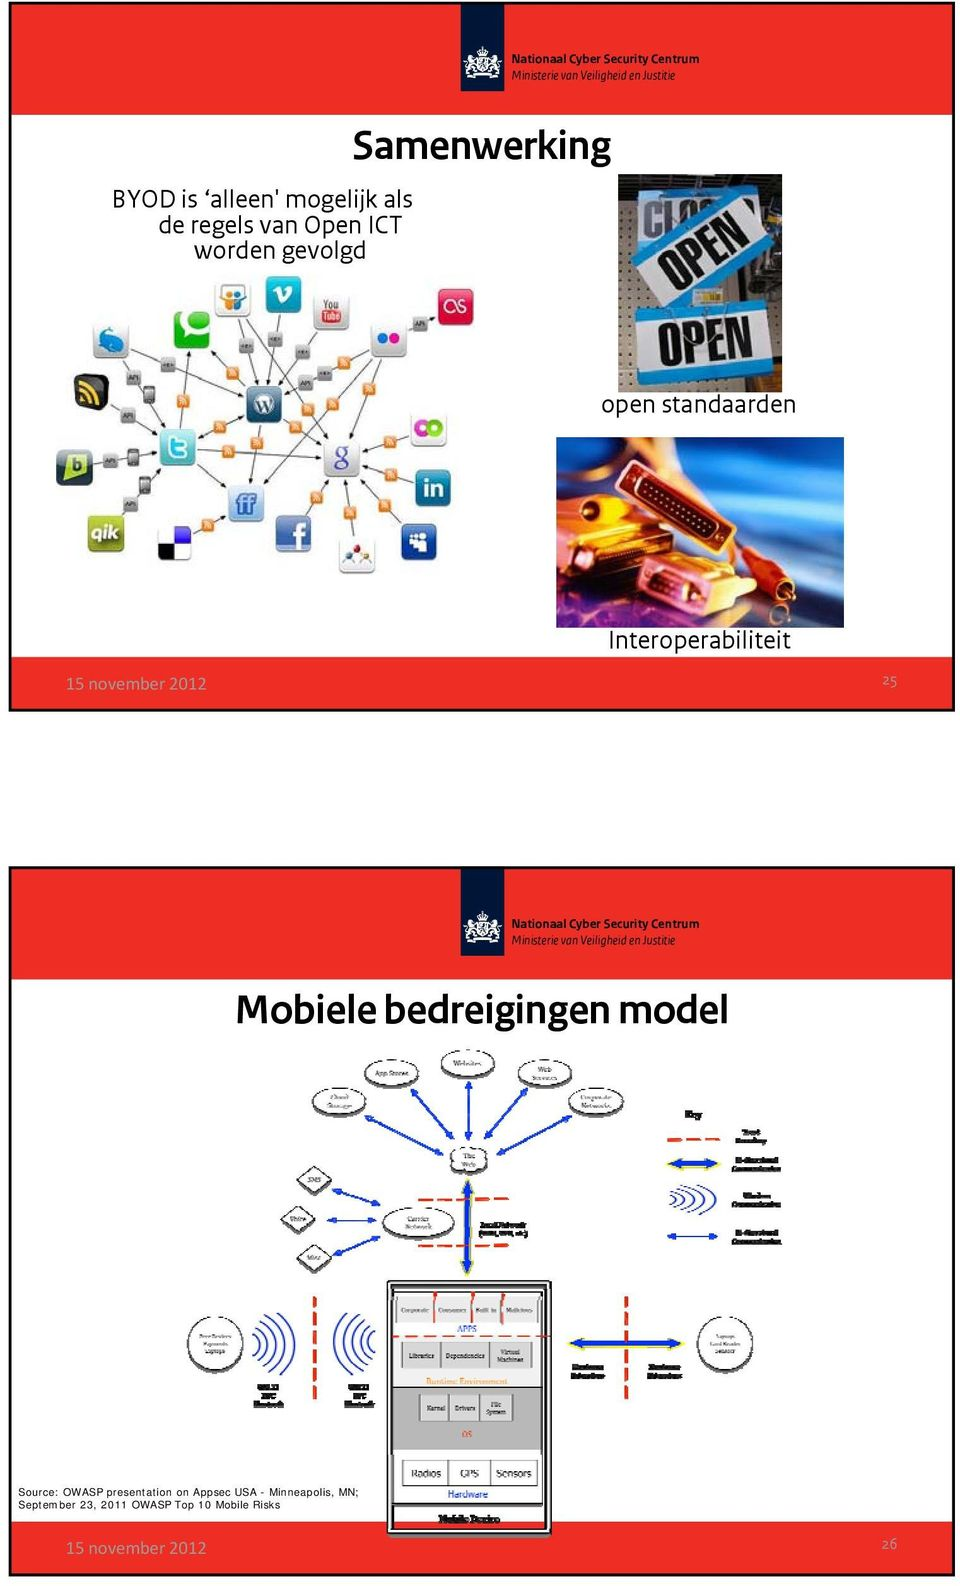 Mobiele bedreigingen model Source: OWASP presentation on Appsec